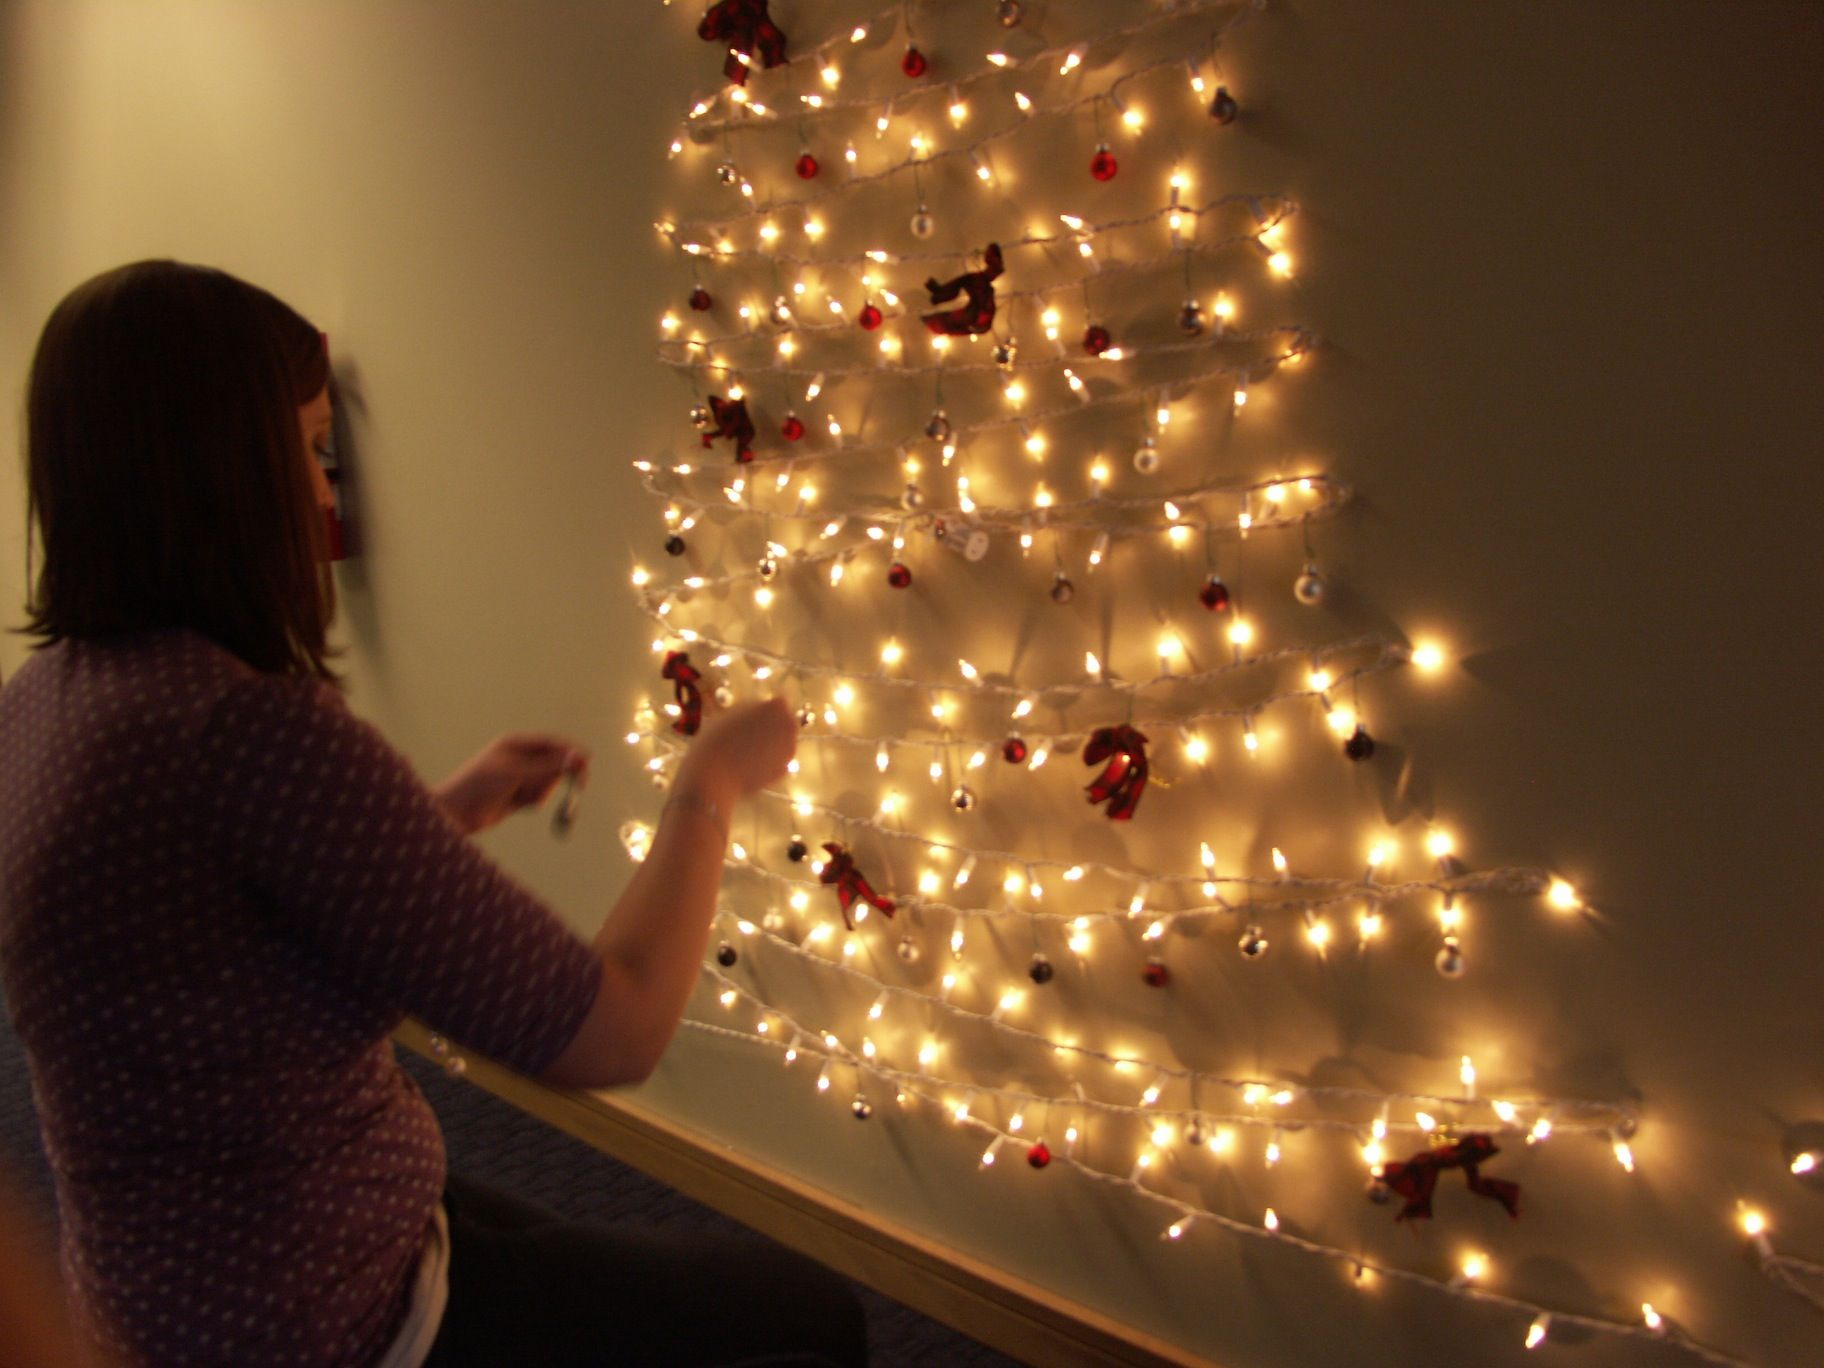 How To String Lights On A Christmas Tree Hanging Ornaments On Alternative Tree  M A K E  Pinterest  Light